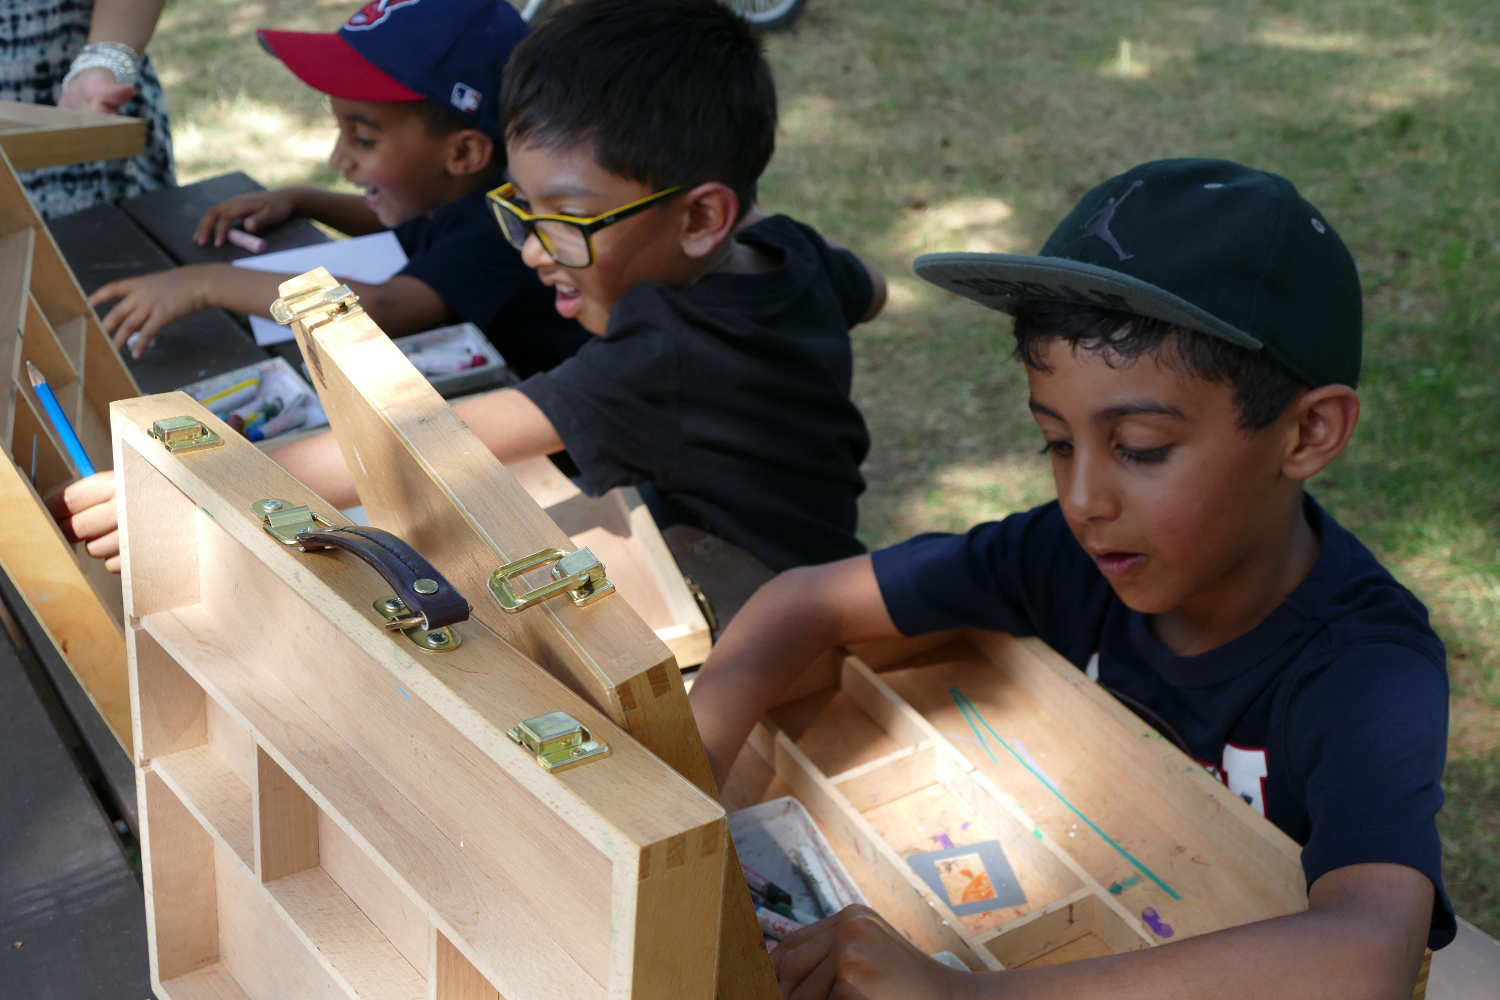 children sitting at a table in the outdoors with wooden boxes in front of them